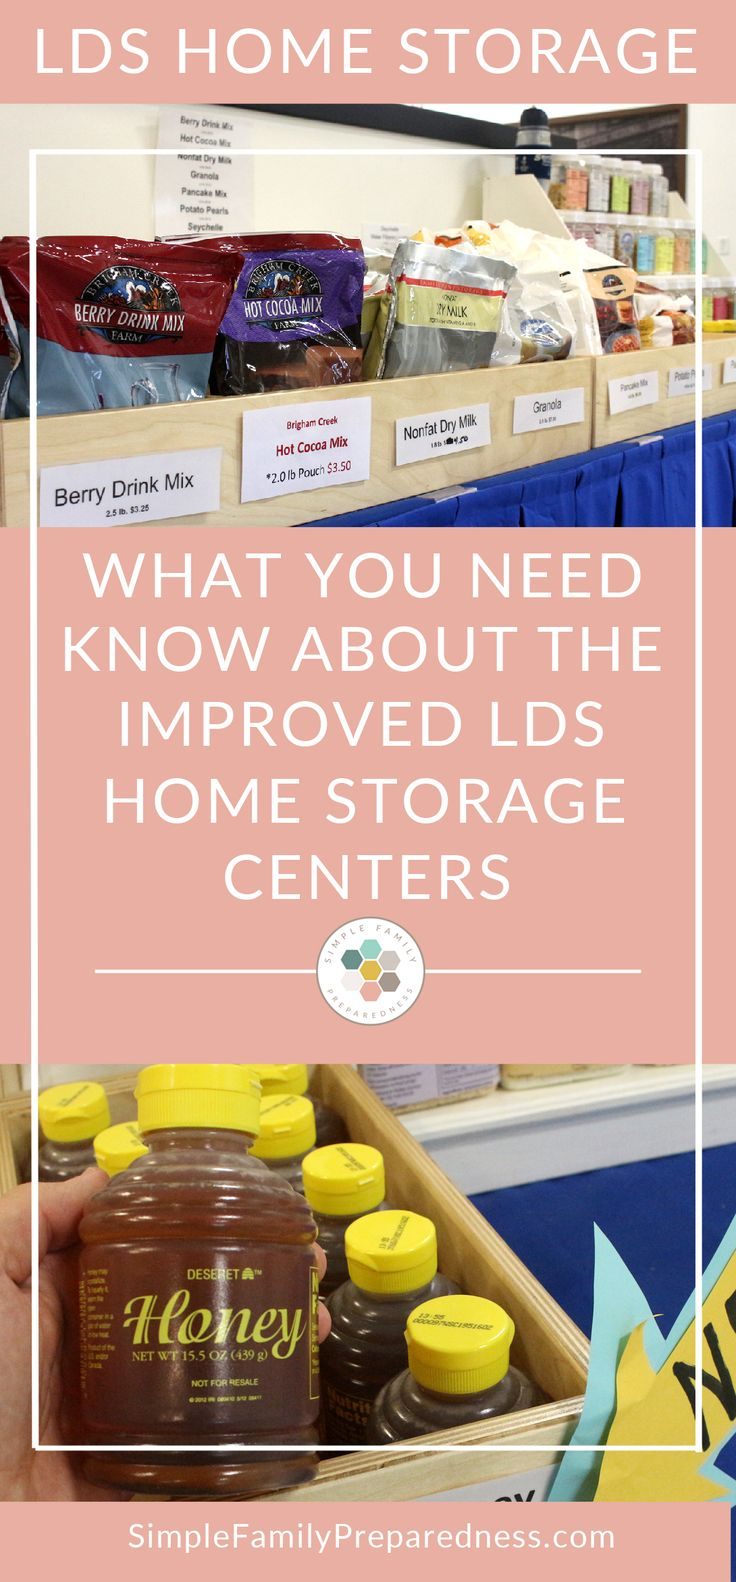 What You Need to Know about the Improved LDS Home Storage Centers via @https://www.pinterest.com/YOHSPrep/